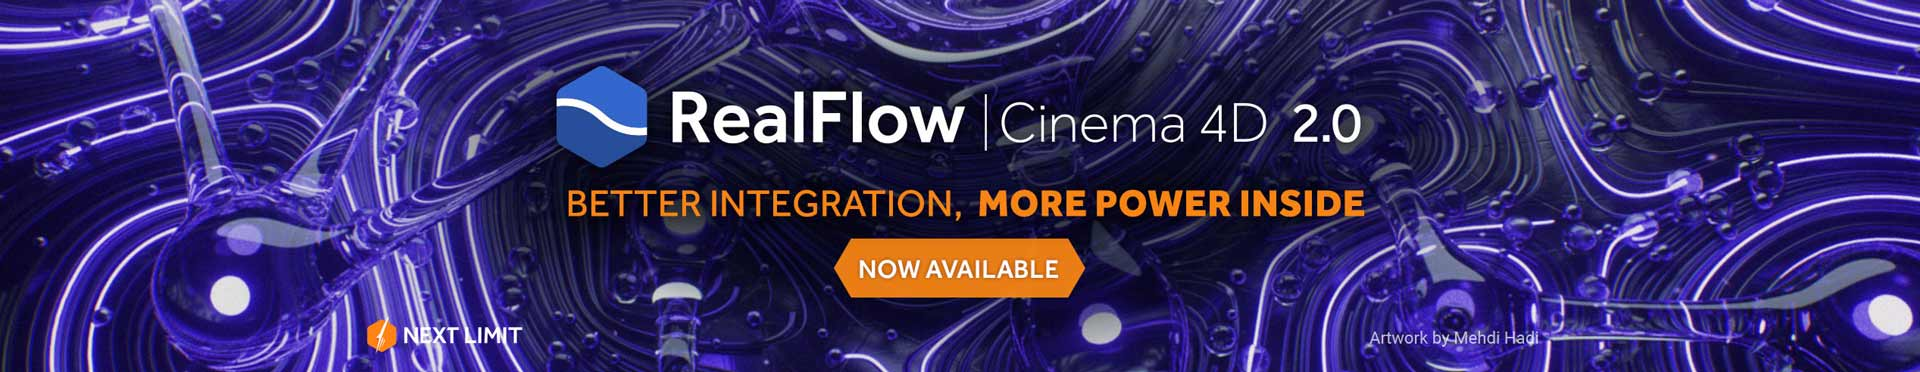 RealFlow | Cinema 4D